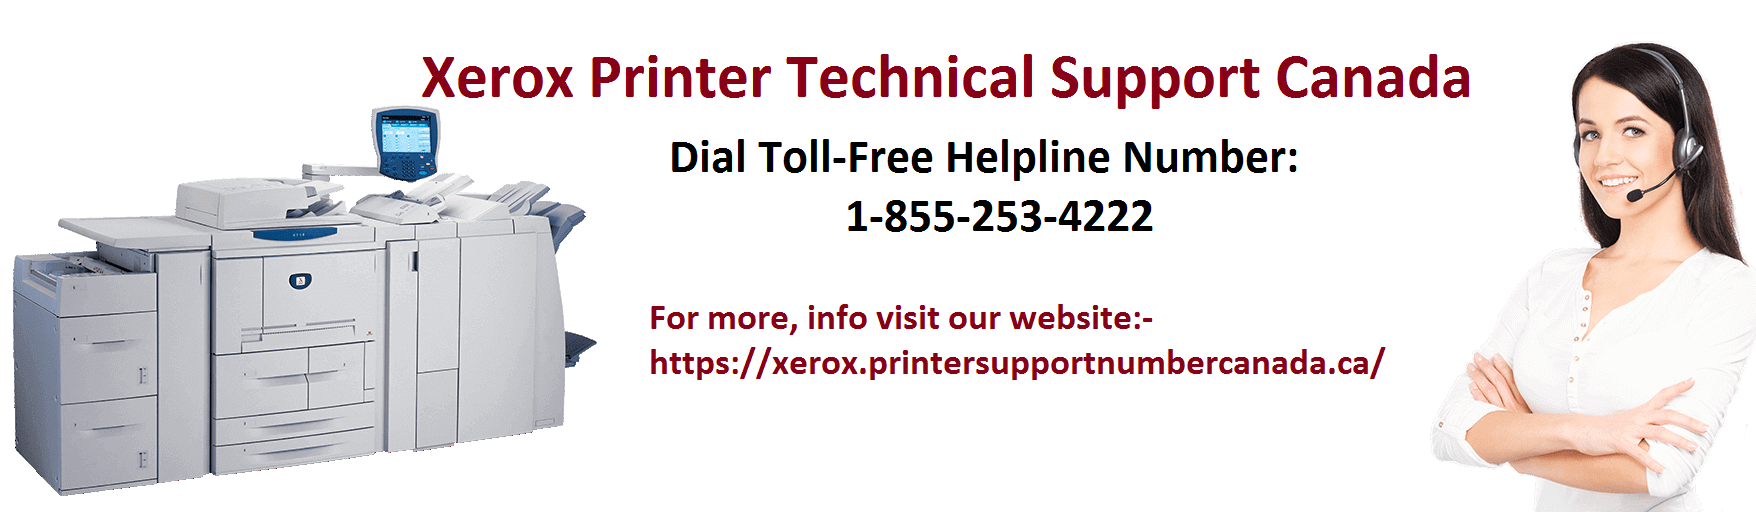 Extend The Life Of Your Printer With The Help Of Xerox Printer